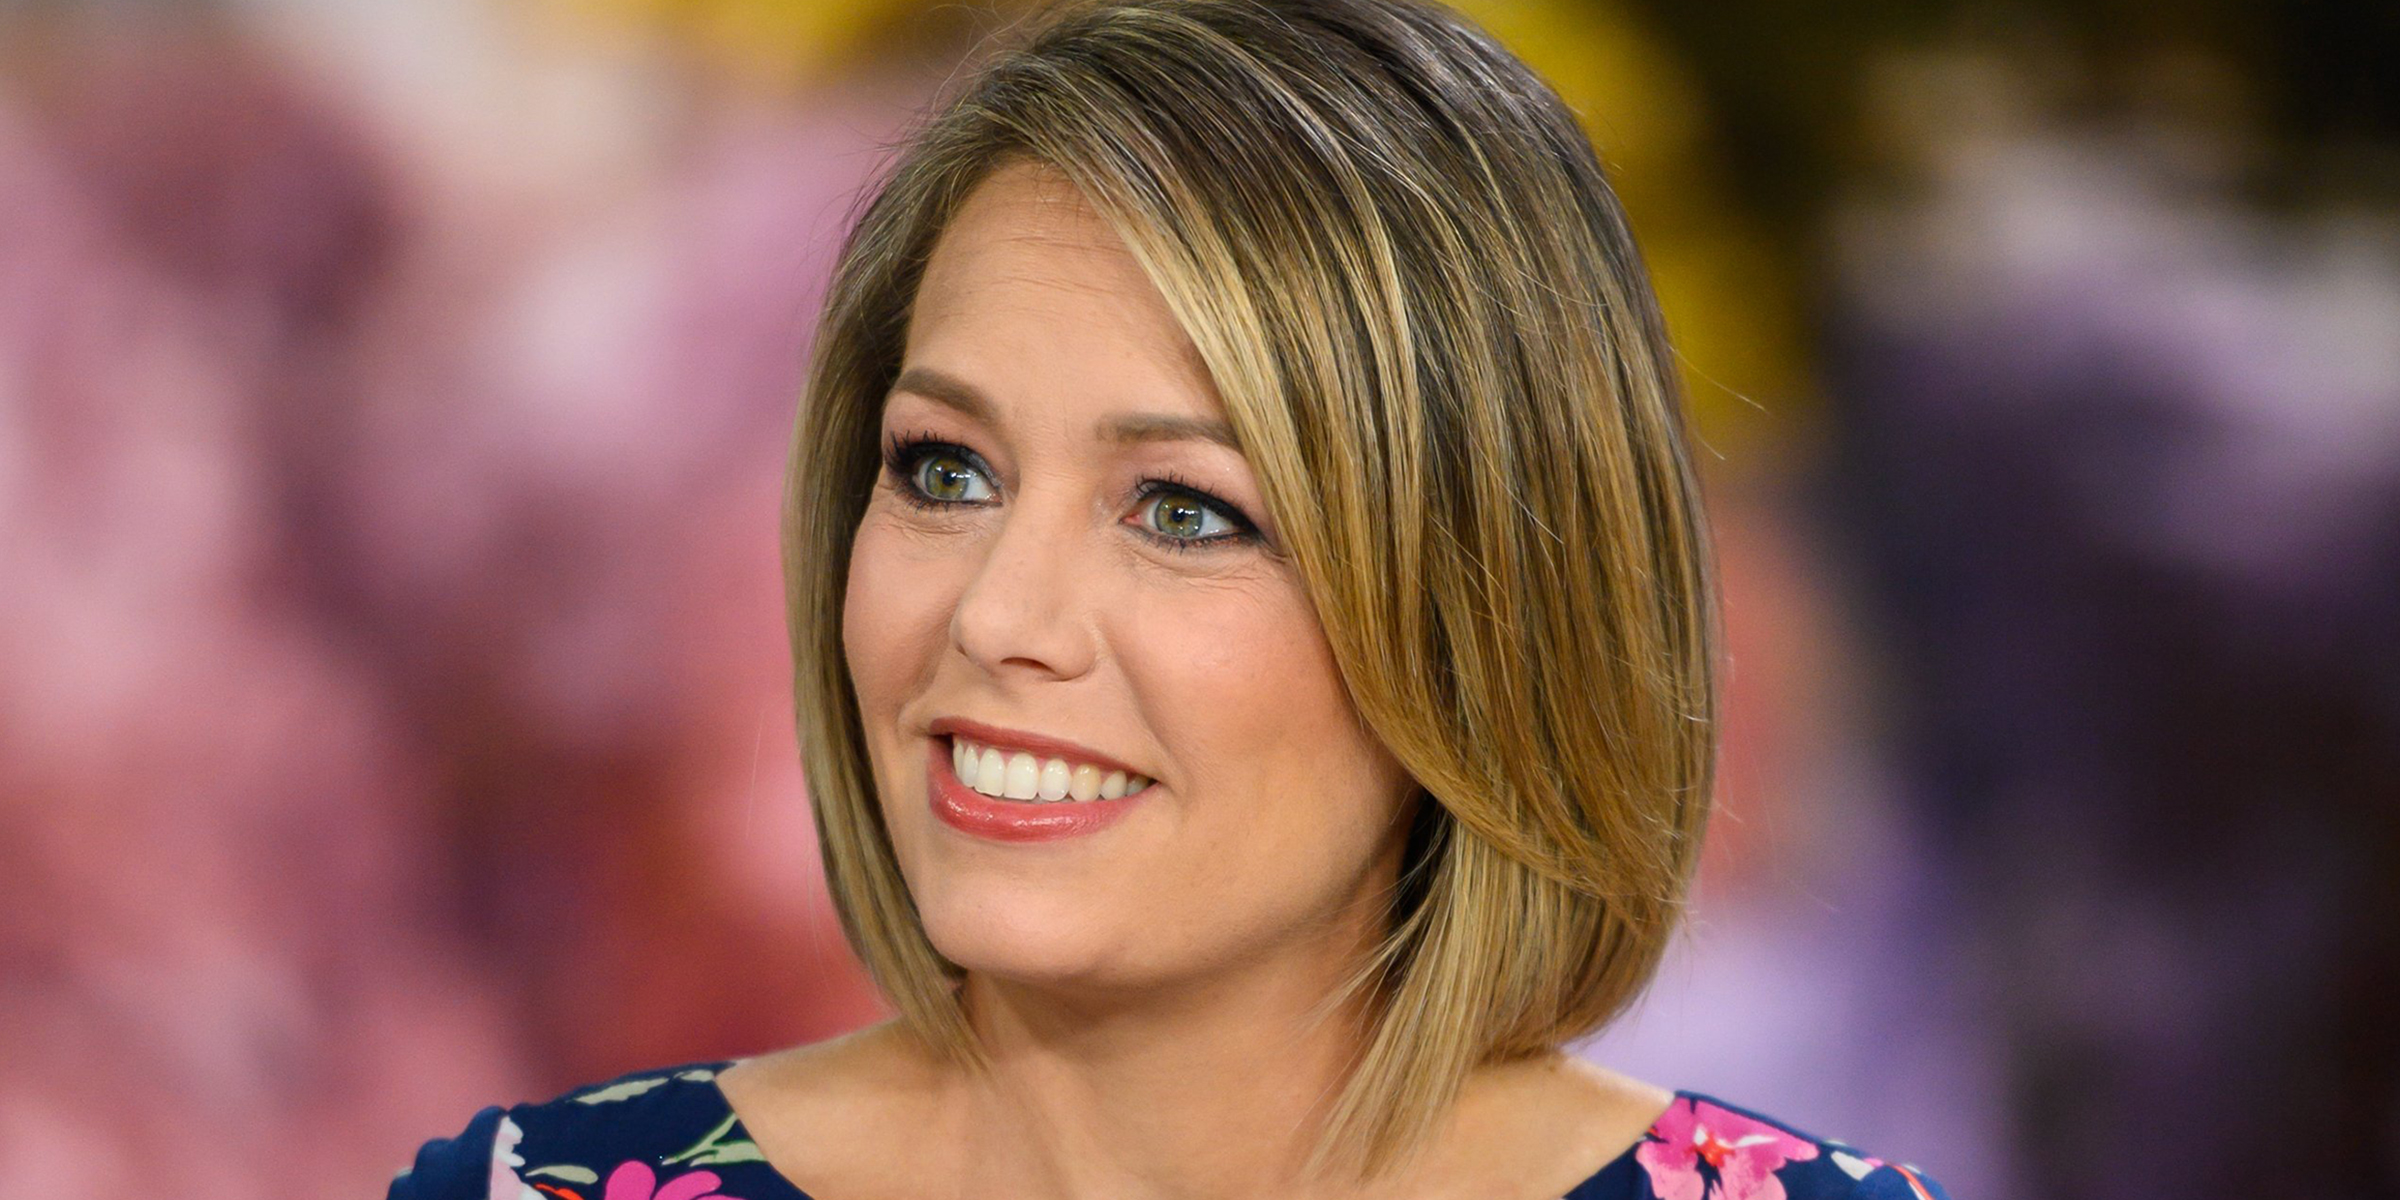 Dylan Dreyer Is Ditching Her Dark Roots For A Bright Blond